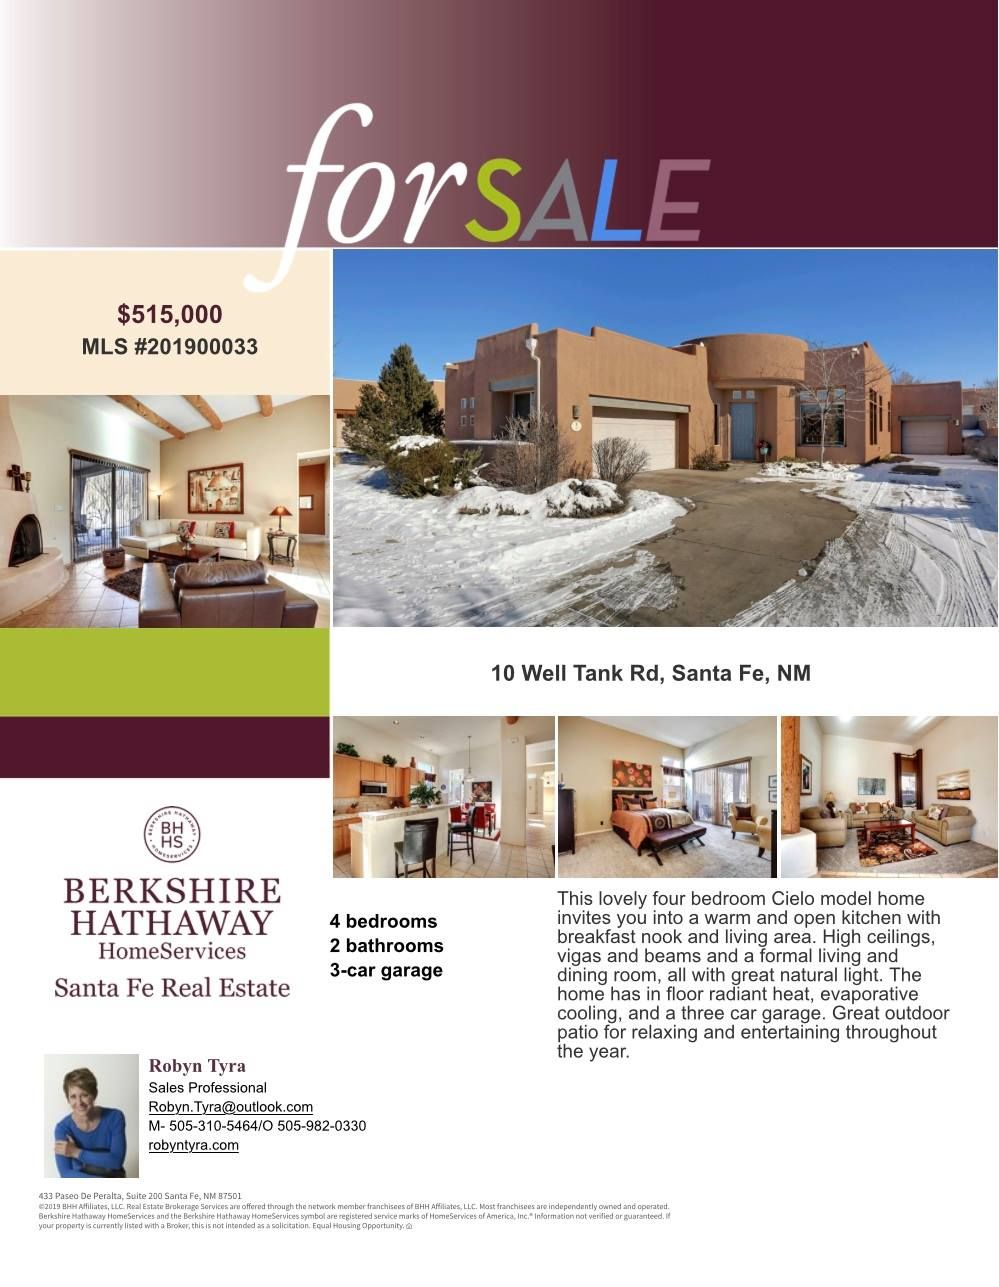 10 Well Tank Road Santa Fe Nm This Lovely Four Bedroom Cielo